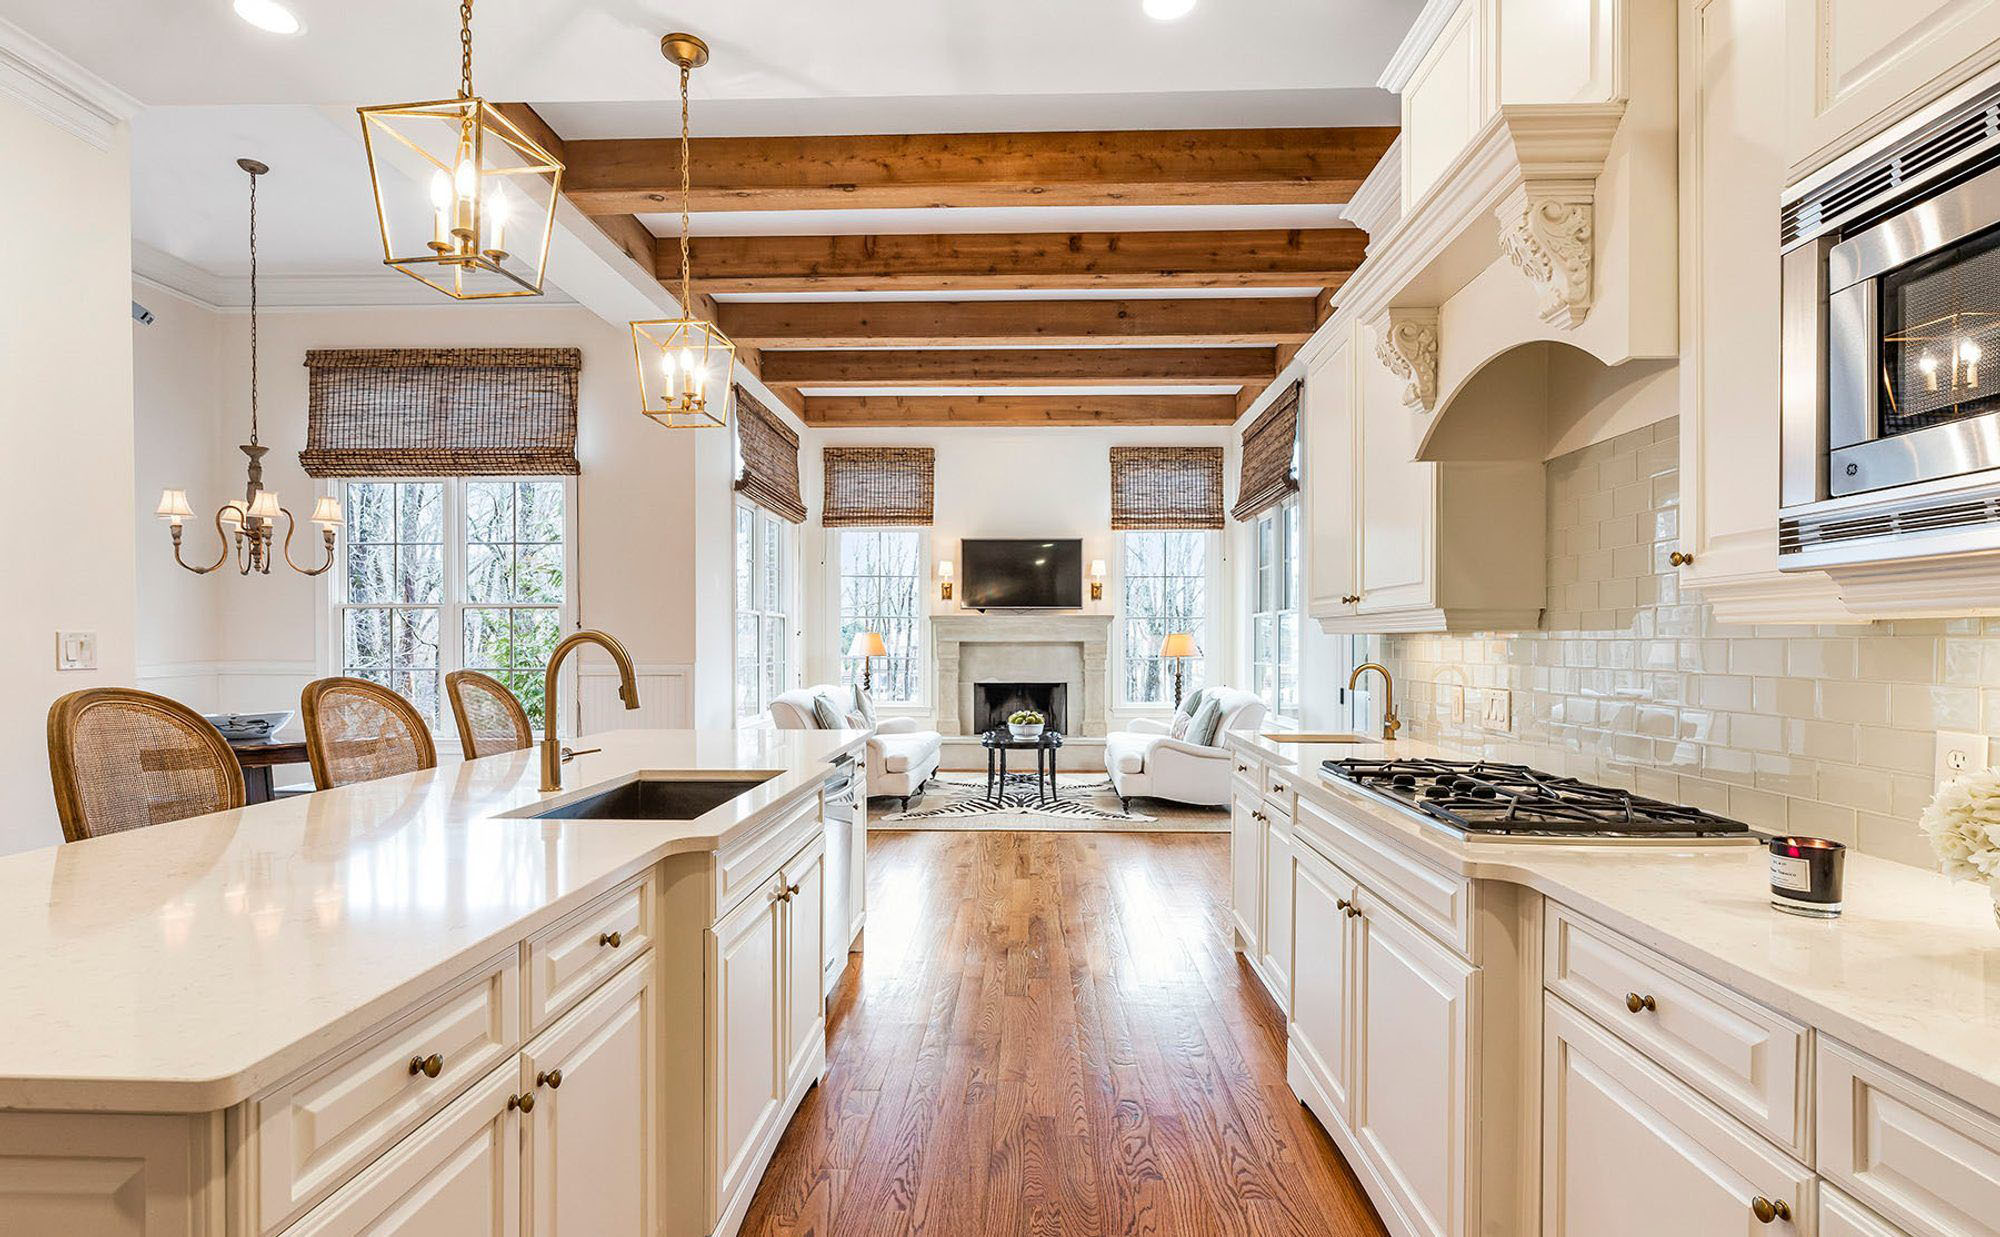 Traditional style kitchen using warm cream cabinets, hardwood floors and exposed ceiling beams.